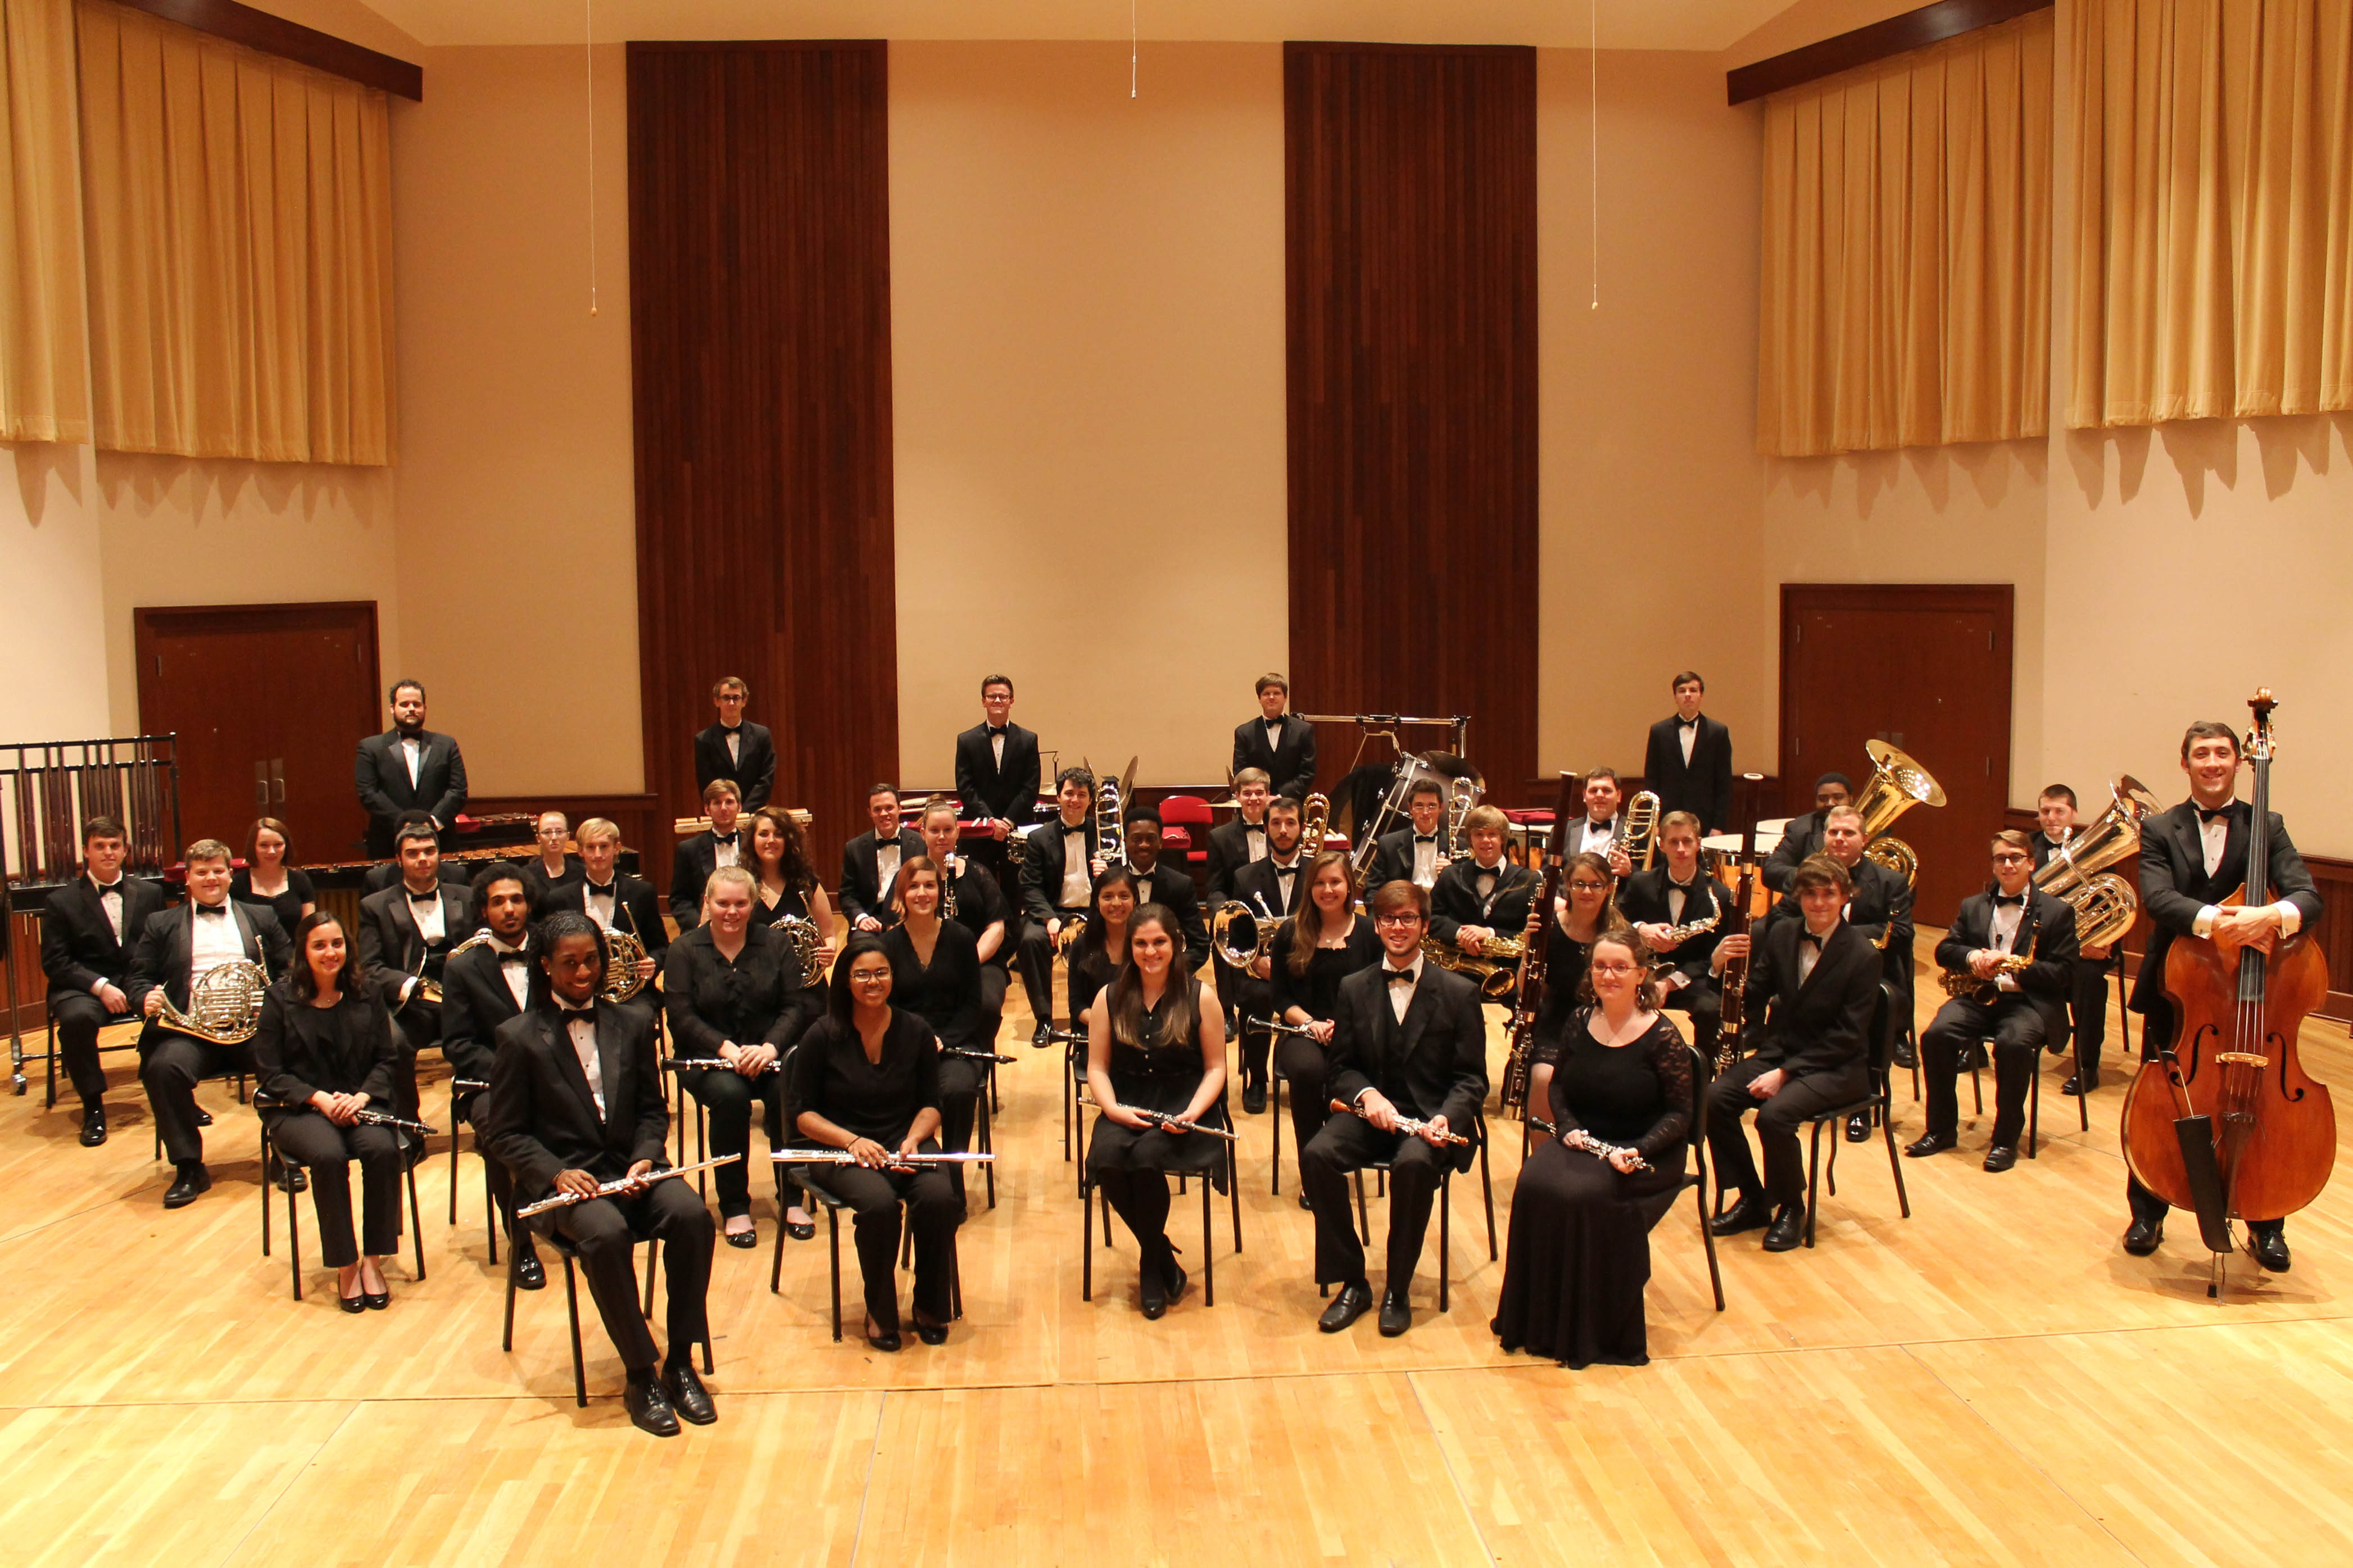 members of USA Wind Ensemble and Symphony Band on stage in before performance